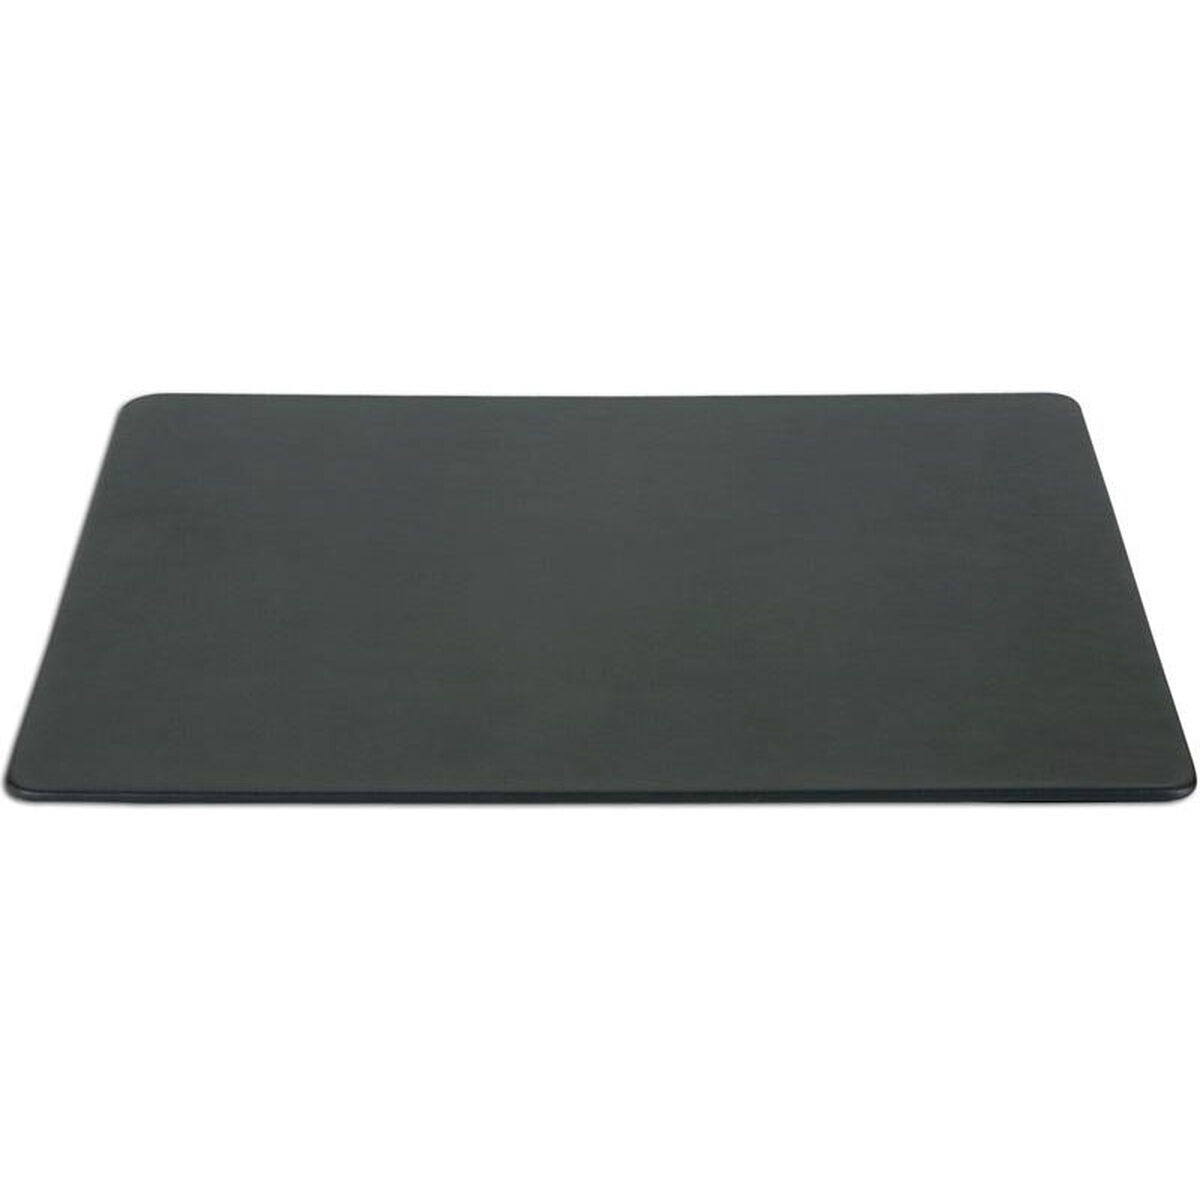 Classic Leather Conf Table Pad P Bizchaircom - Conference table pads